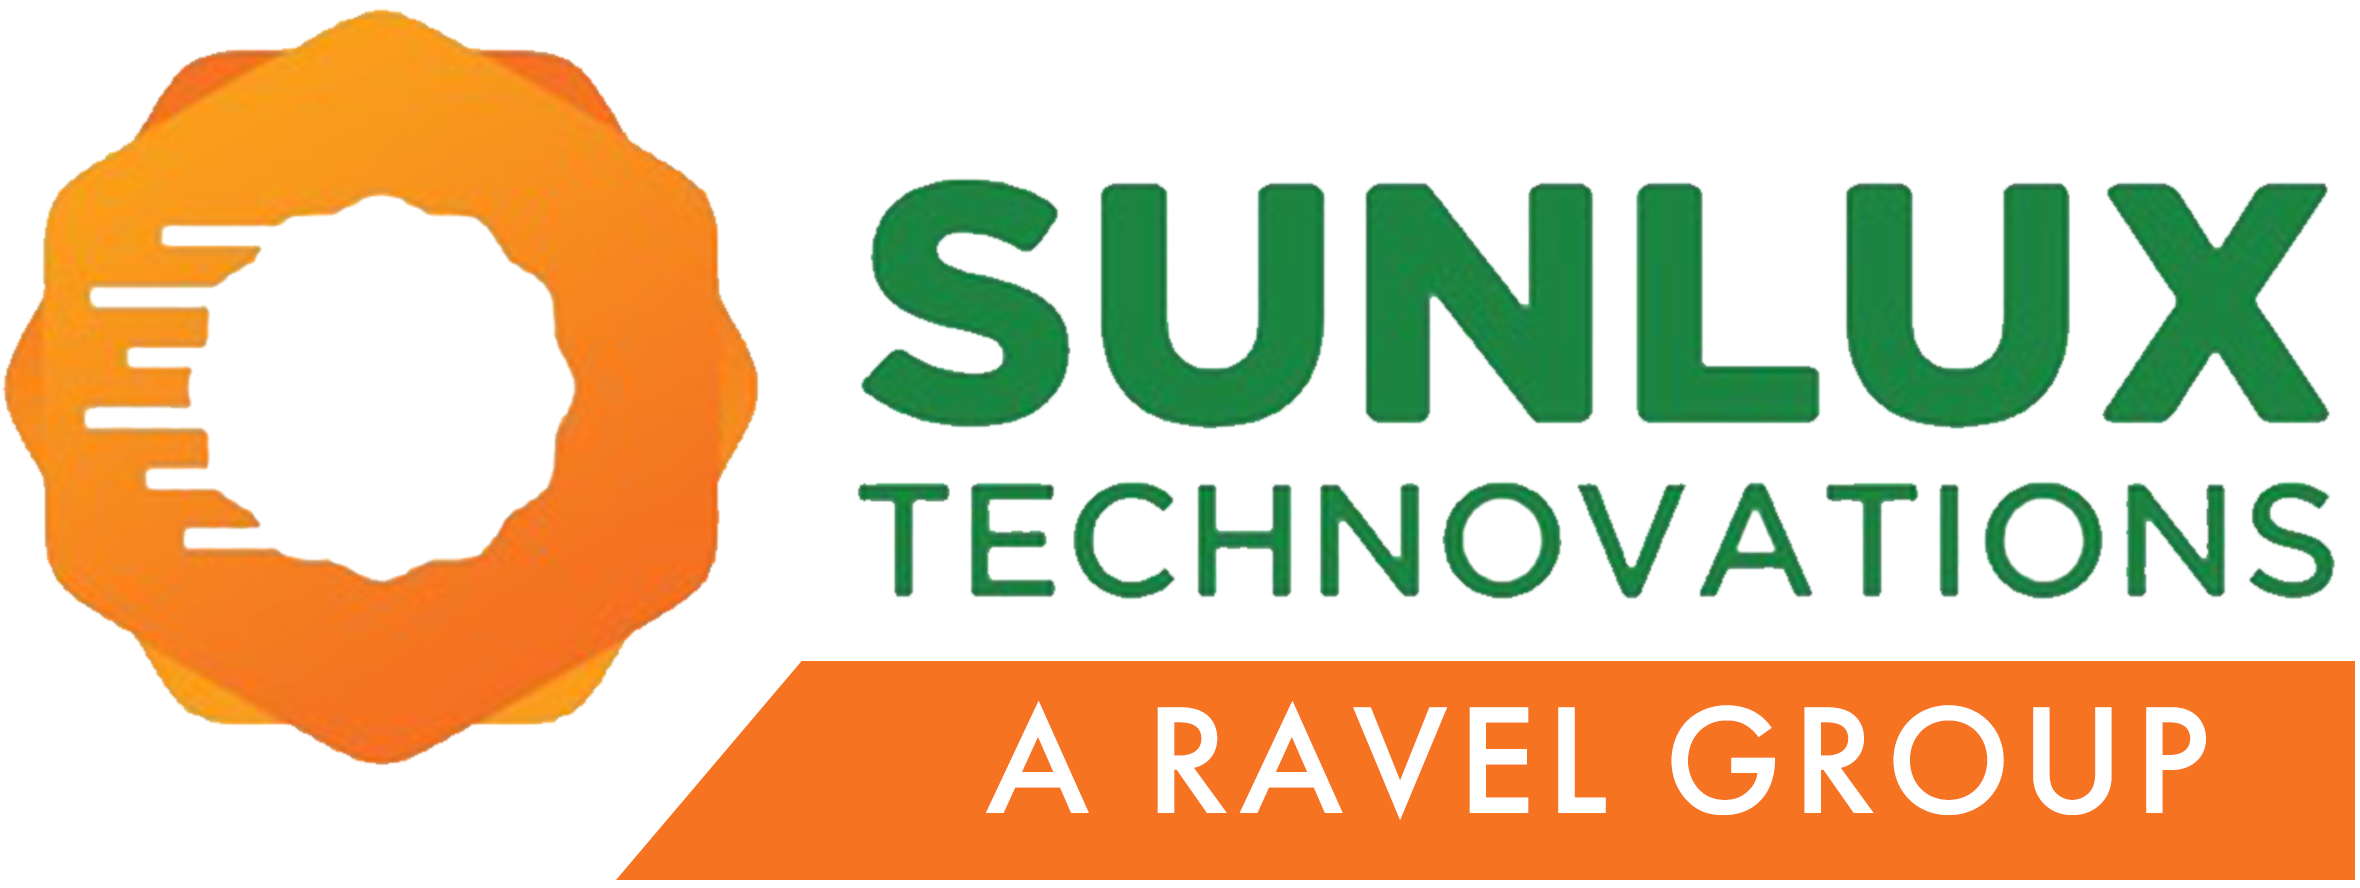 Sunlux Technovations